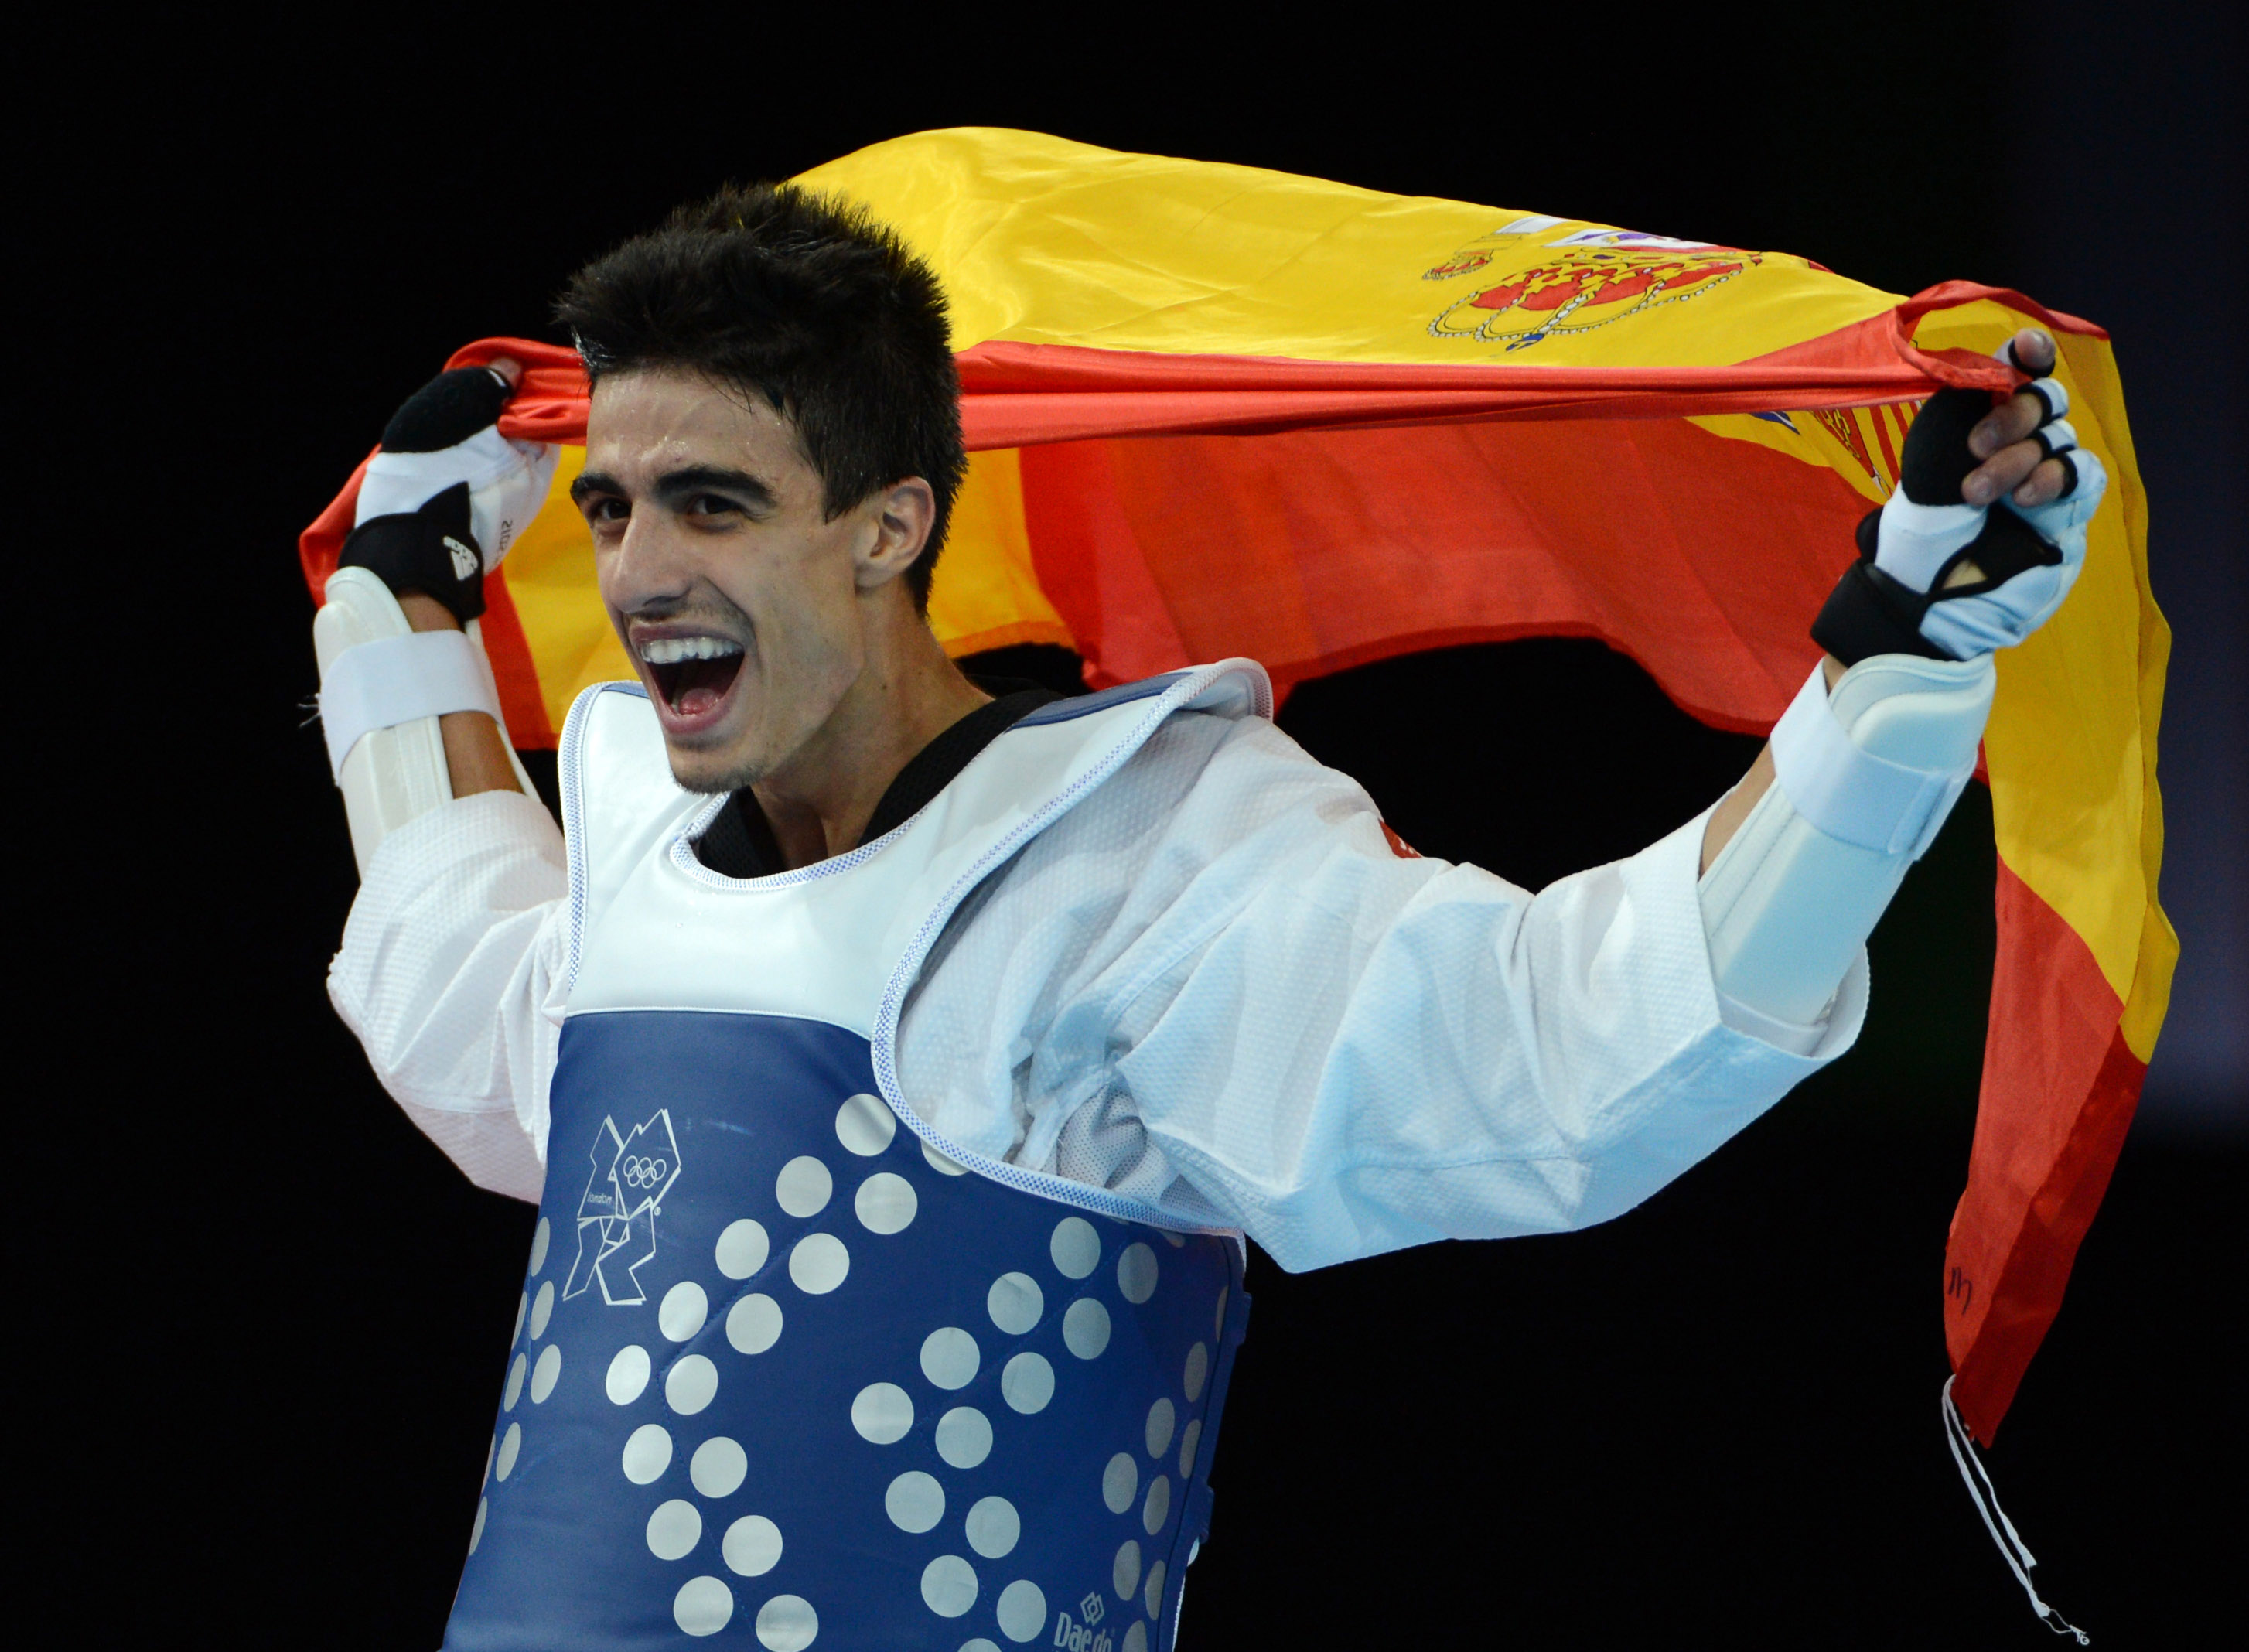 Spain's Joel Gonzalez Bonilla celebrates his victory over South Korea's Lee Daehoon at the end of their men's taekwondo gold medal bout in the category under 58 kg as part of the London 2012 Olympic games, on August 8, 2012 at the ExCel centre in London. AFP PHOTO / TOSHIFUMI KITAMURA (Photo credit should read TOSHIFUMI KITAMURA/AFP/GettyImages)